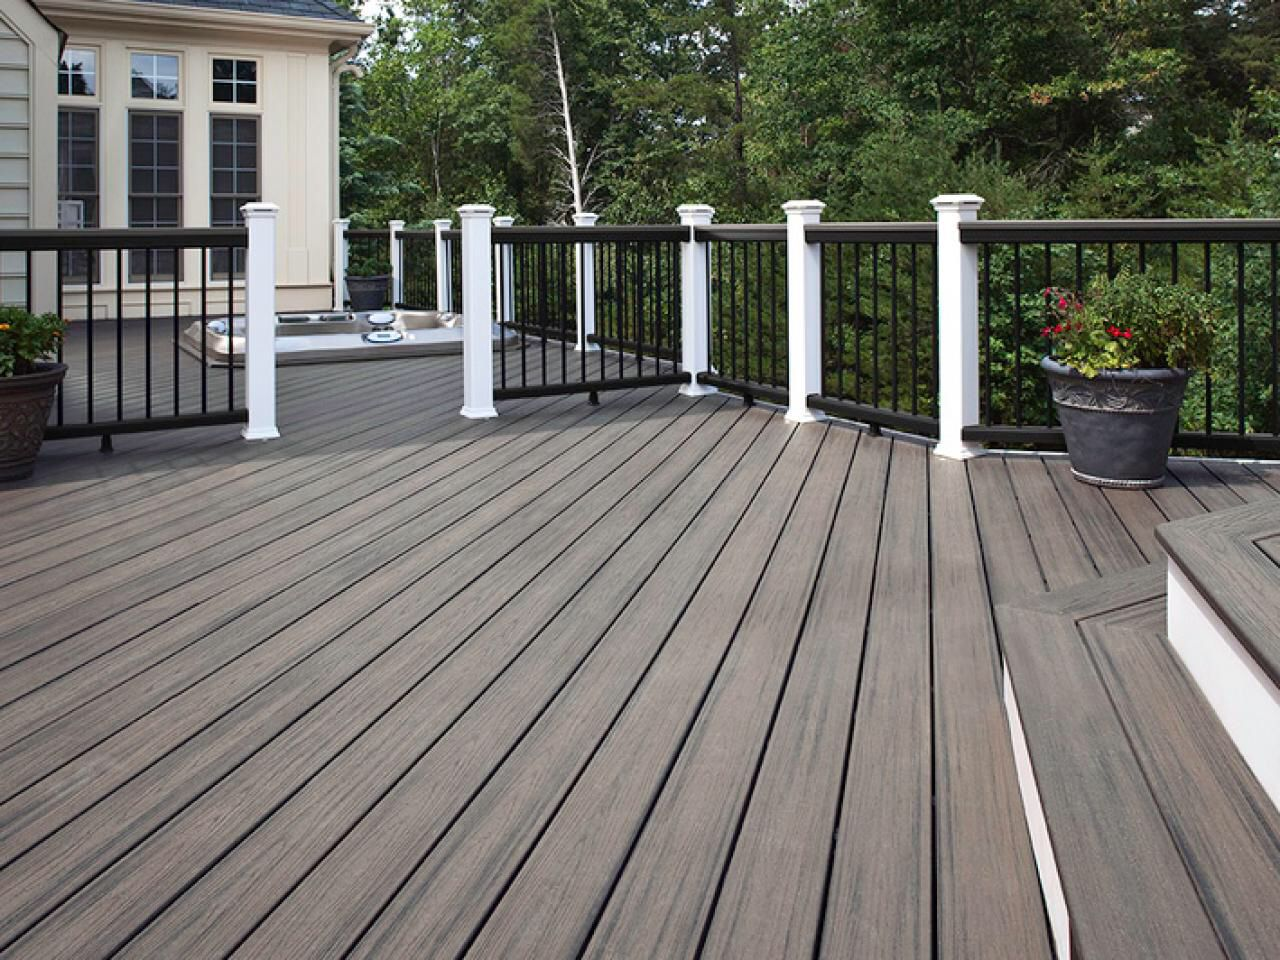 Grey Deck With White And Black Trim Sunken Hot Tub Building A Deck Decks Backyard